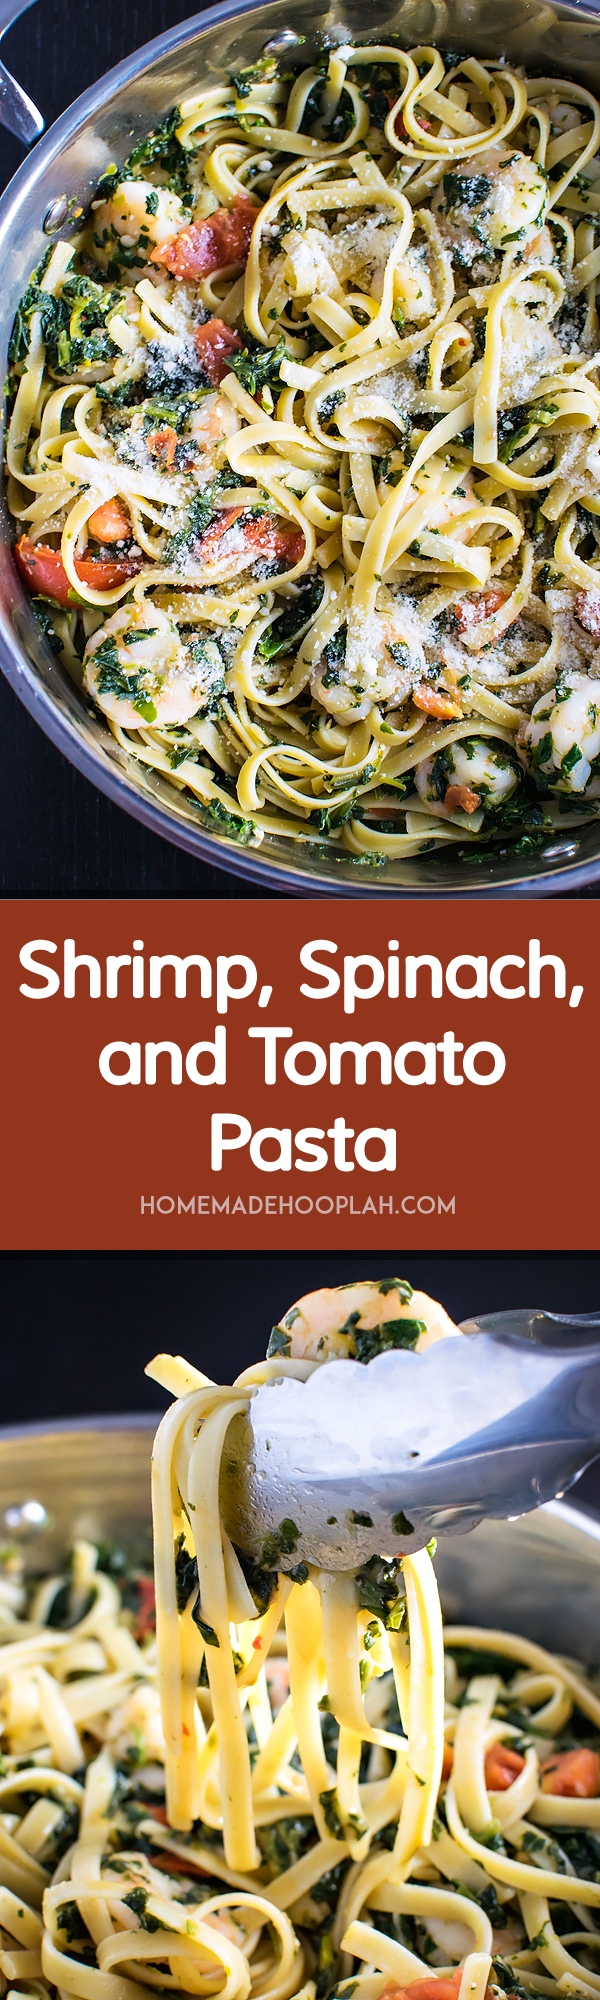 Shrimp, Spinach, and Tomato Pasta - Homemade Hooplah